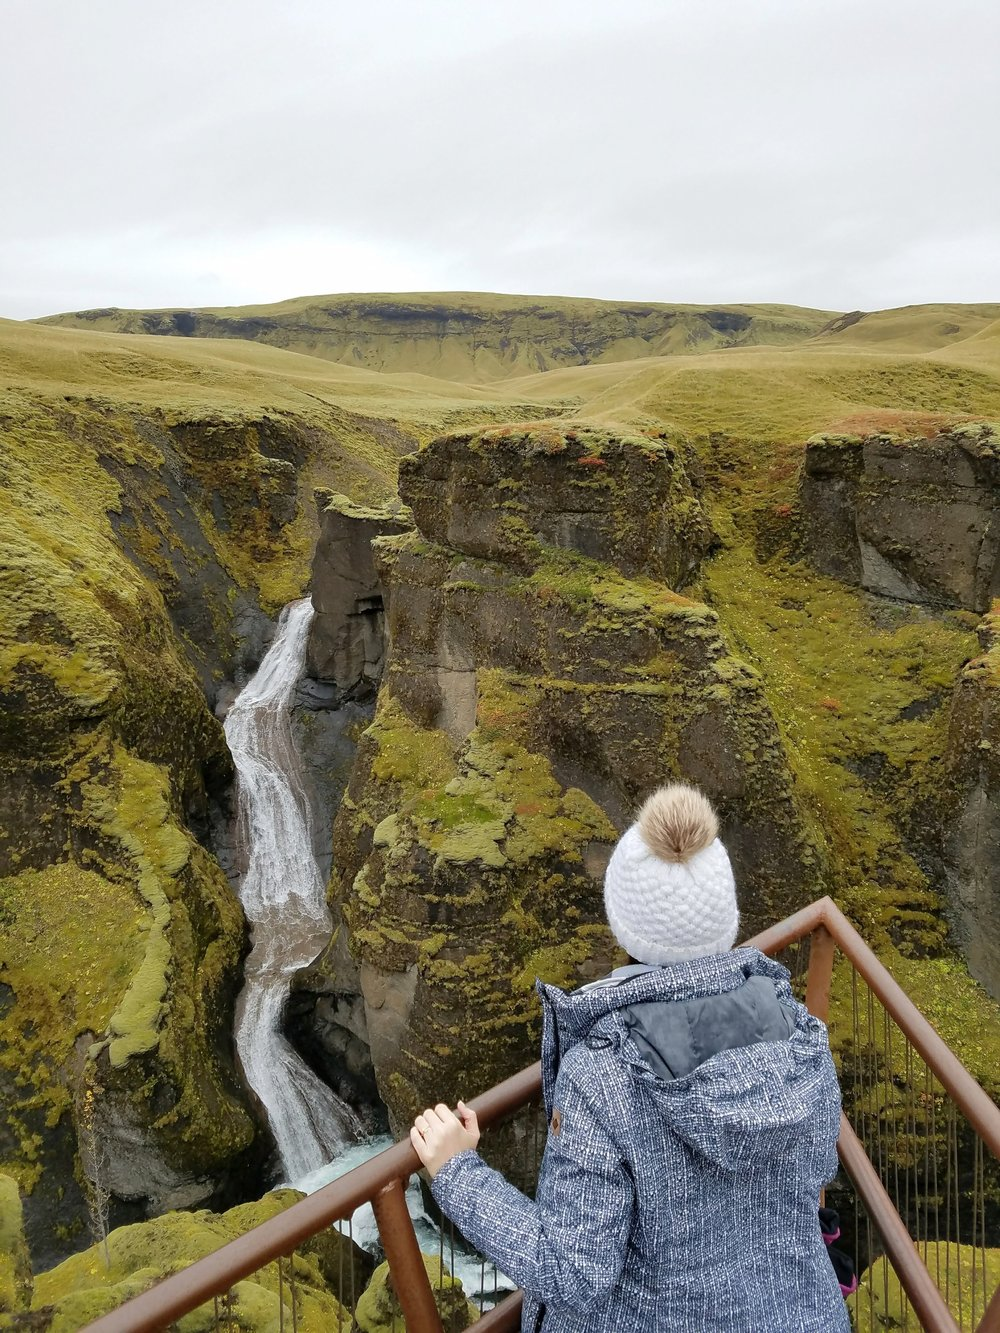 Iceland   Iceland travel   Europe travel   See in Iceland   Do in Iceland   Iceland tips   Iceland sites   Iceland waterfalls   Iceland guide   Waterfalls   Hidden waterfalls